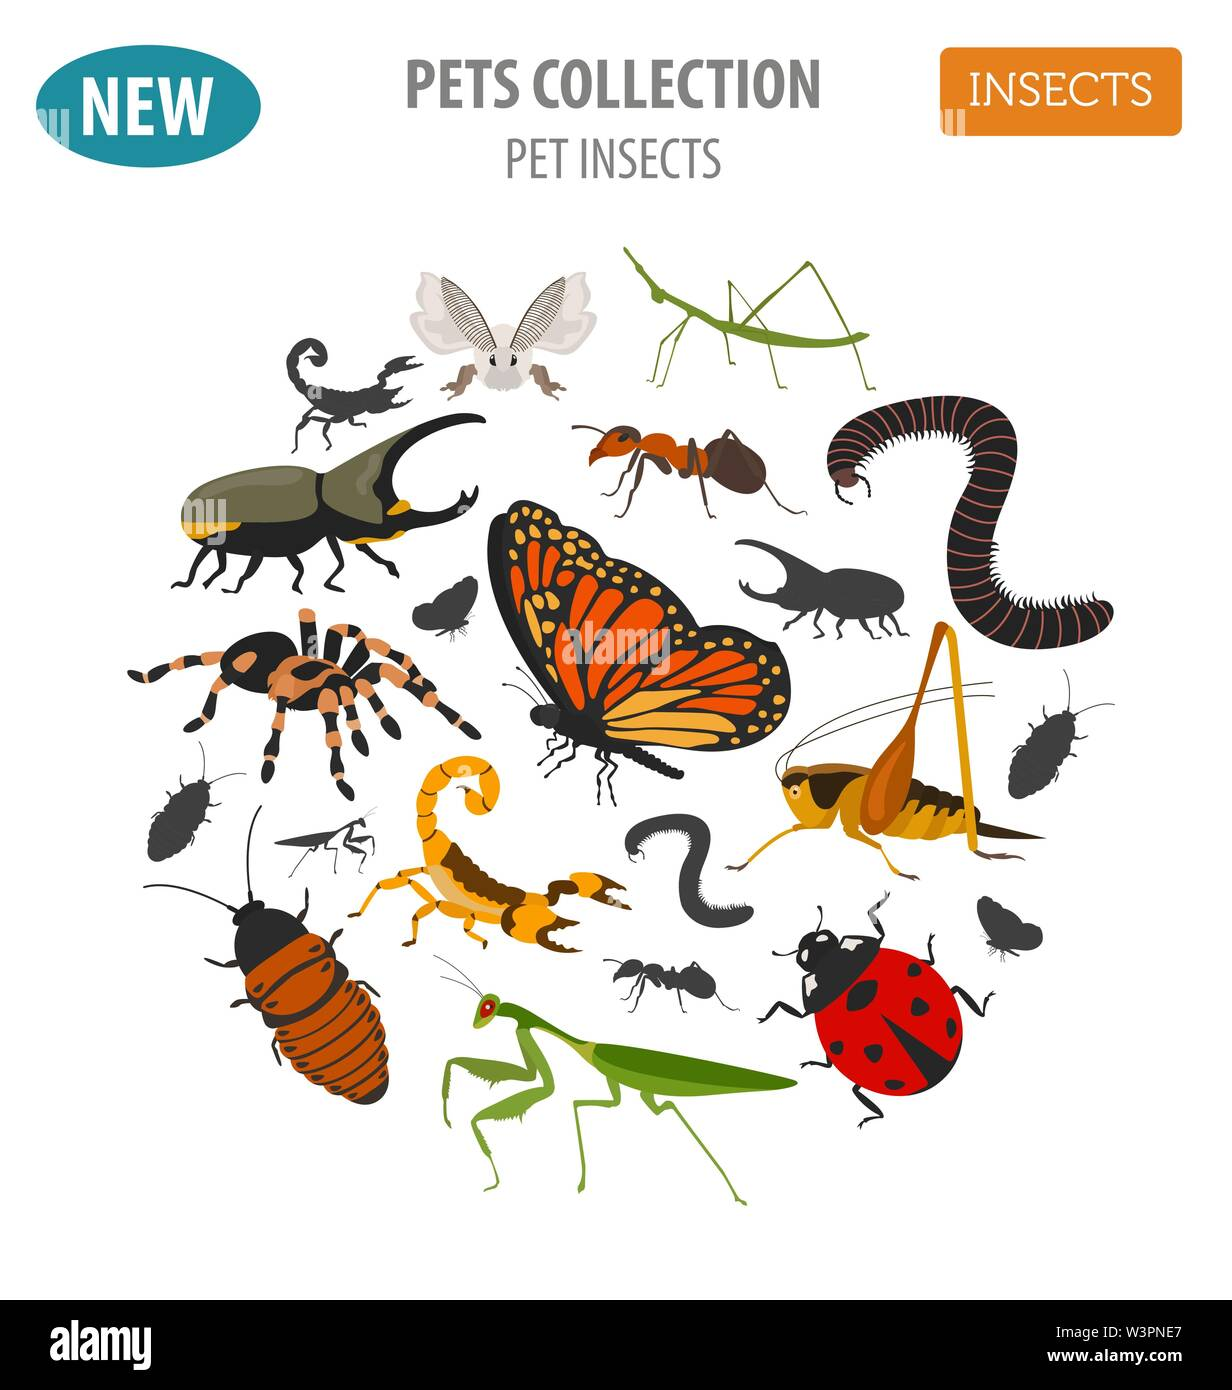 Pet insects breeds icon set flat style isolated on white. House keeping bugs, beetles, sticks, spiders and other collection. Create own infographic ab - Stock Image